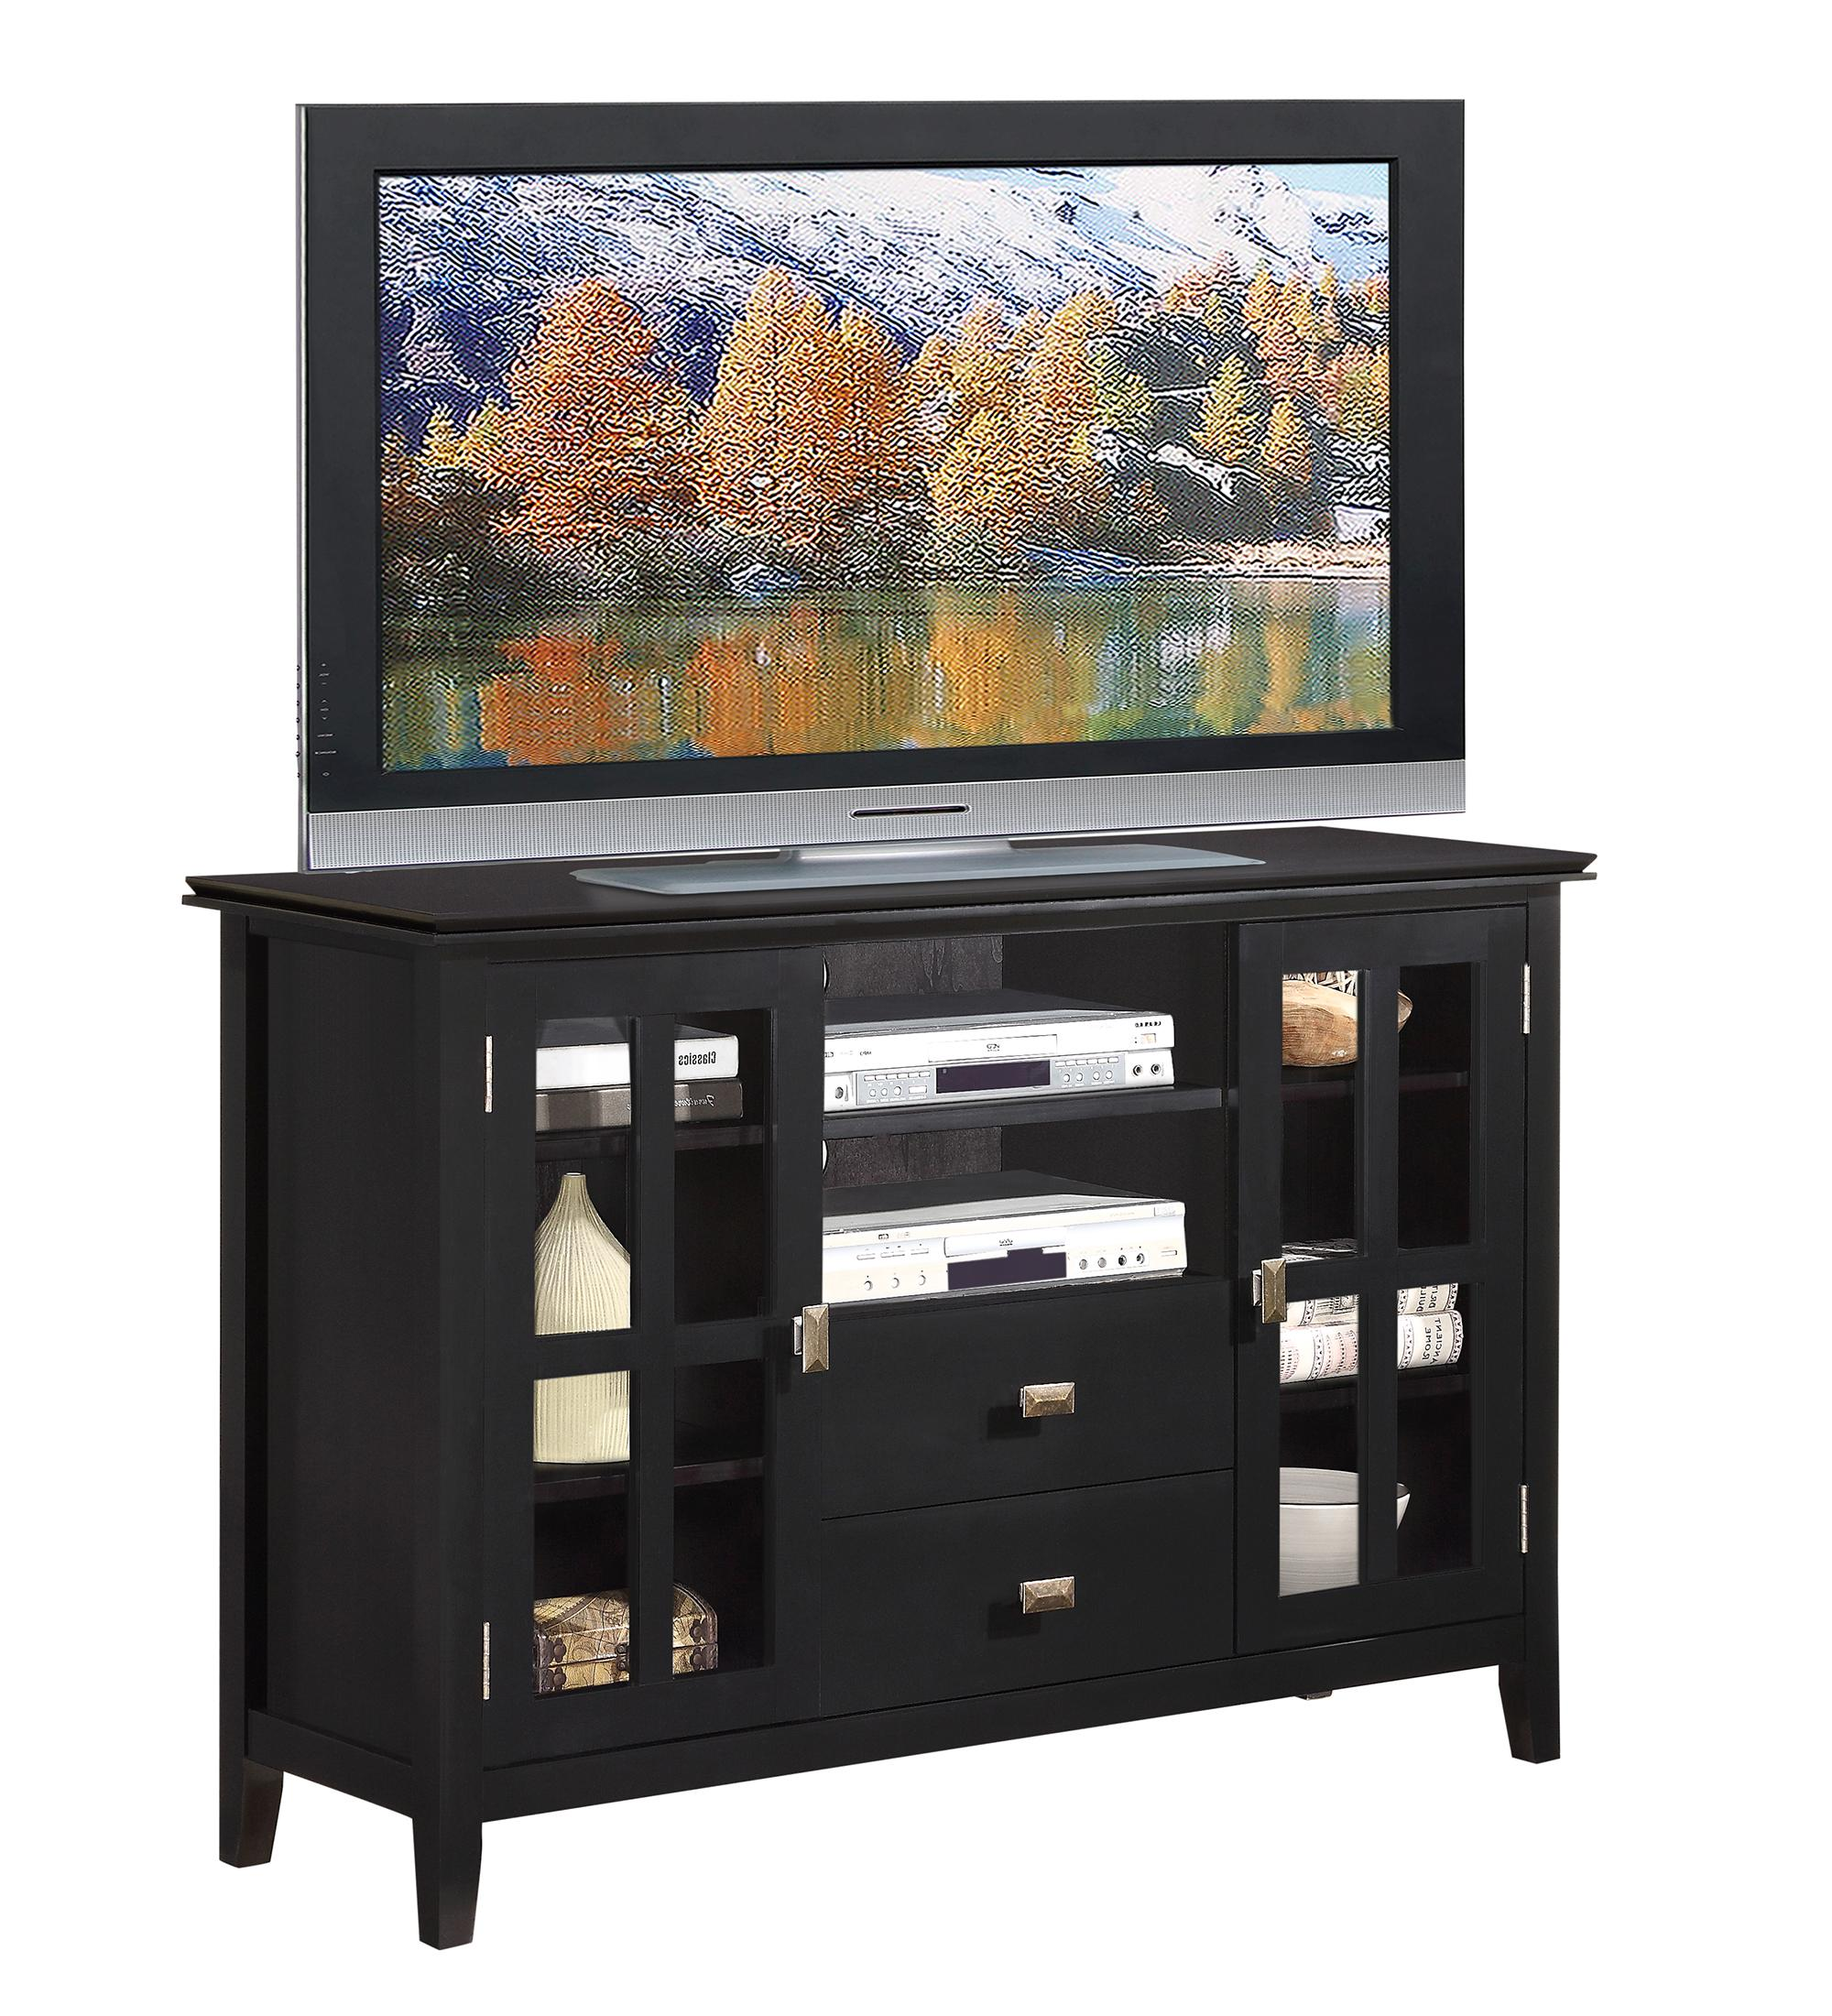 Amazoncom  Simpli Home AXCHOL005BL Artisan Collection Tall TV Stand 53Inch Wide by 35Inch